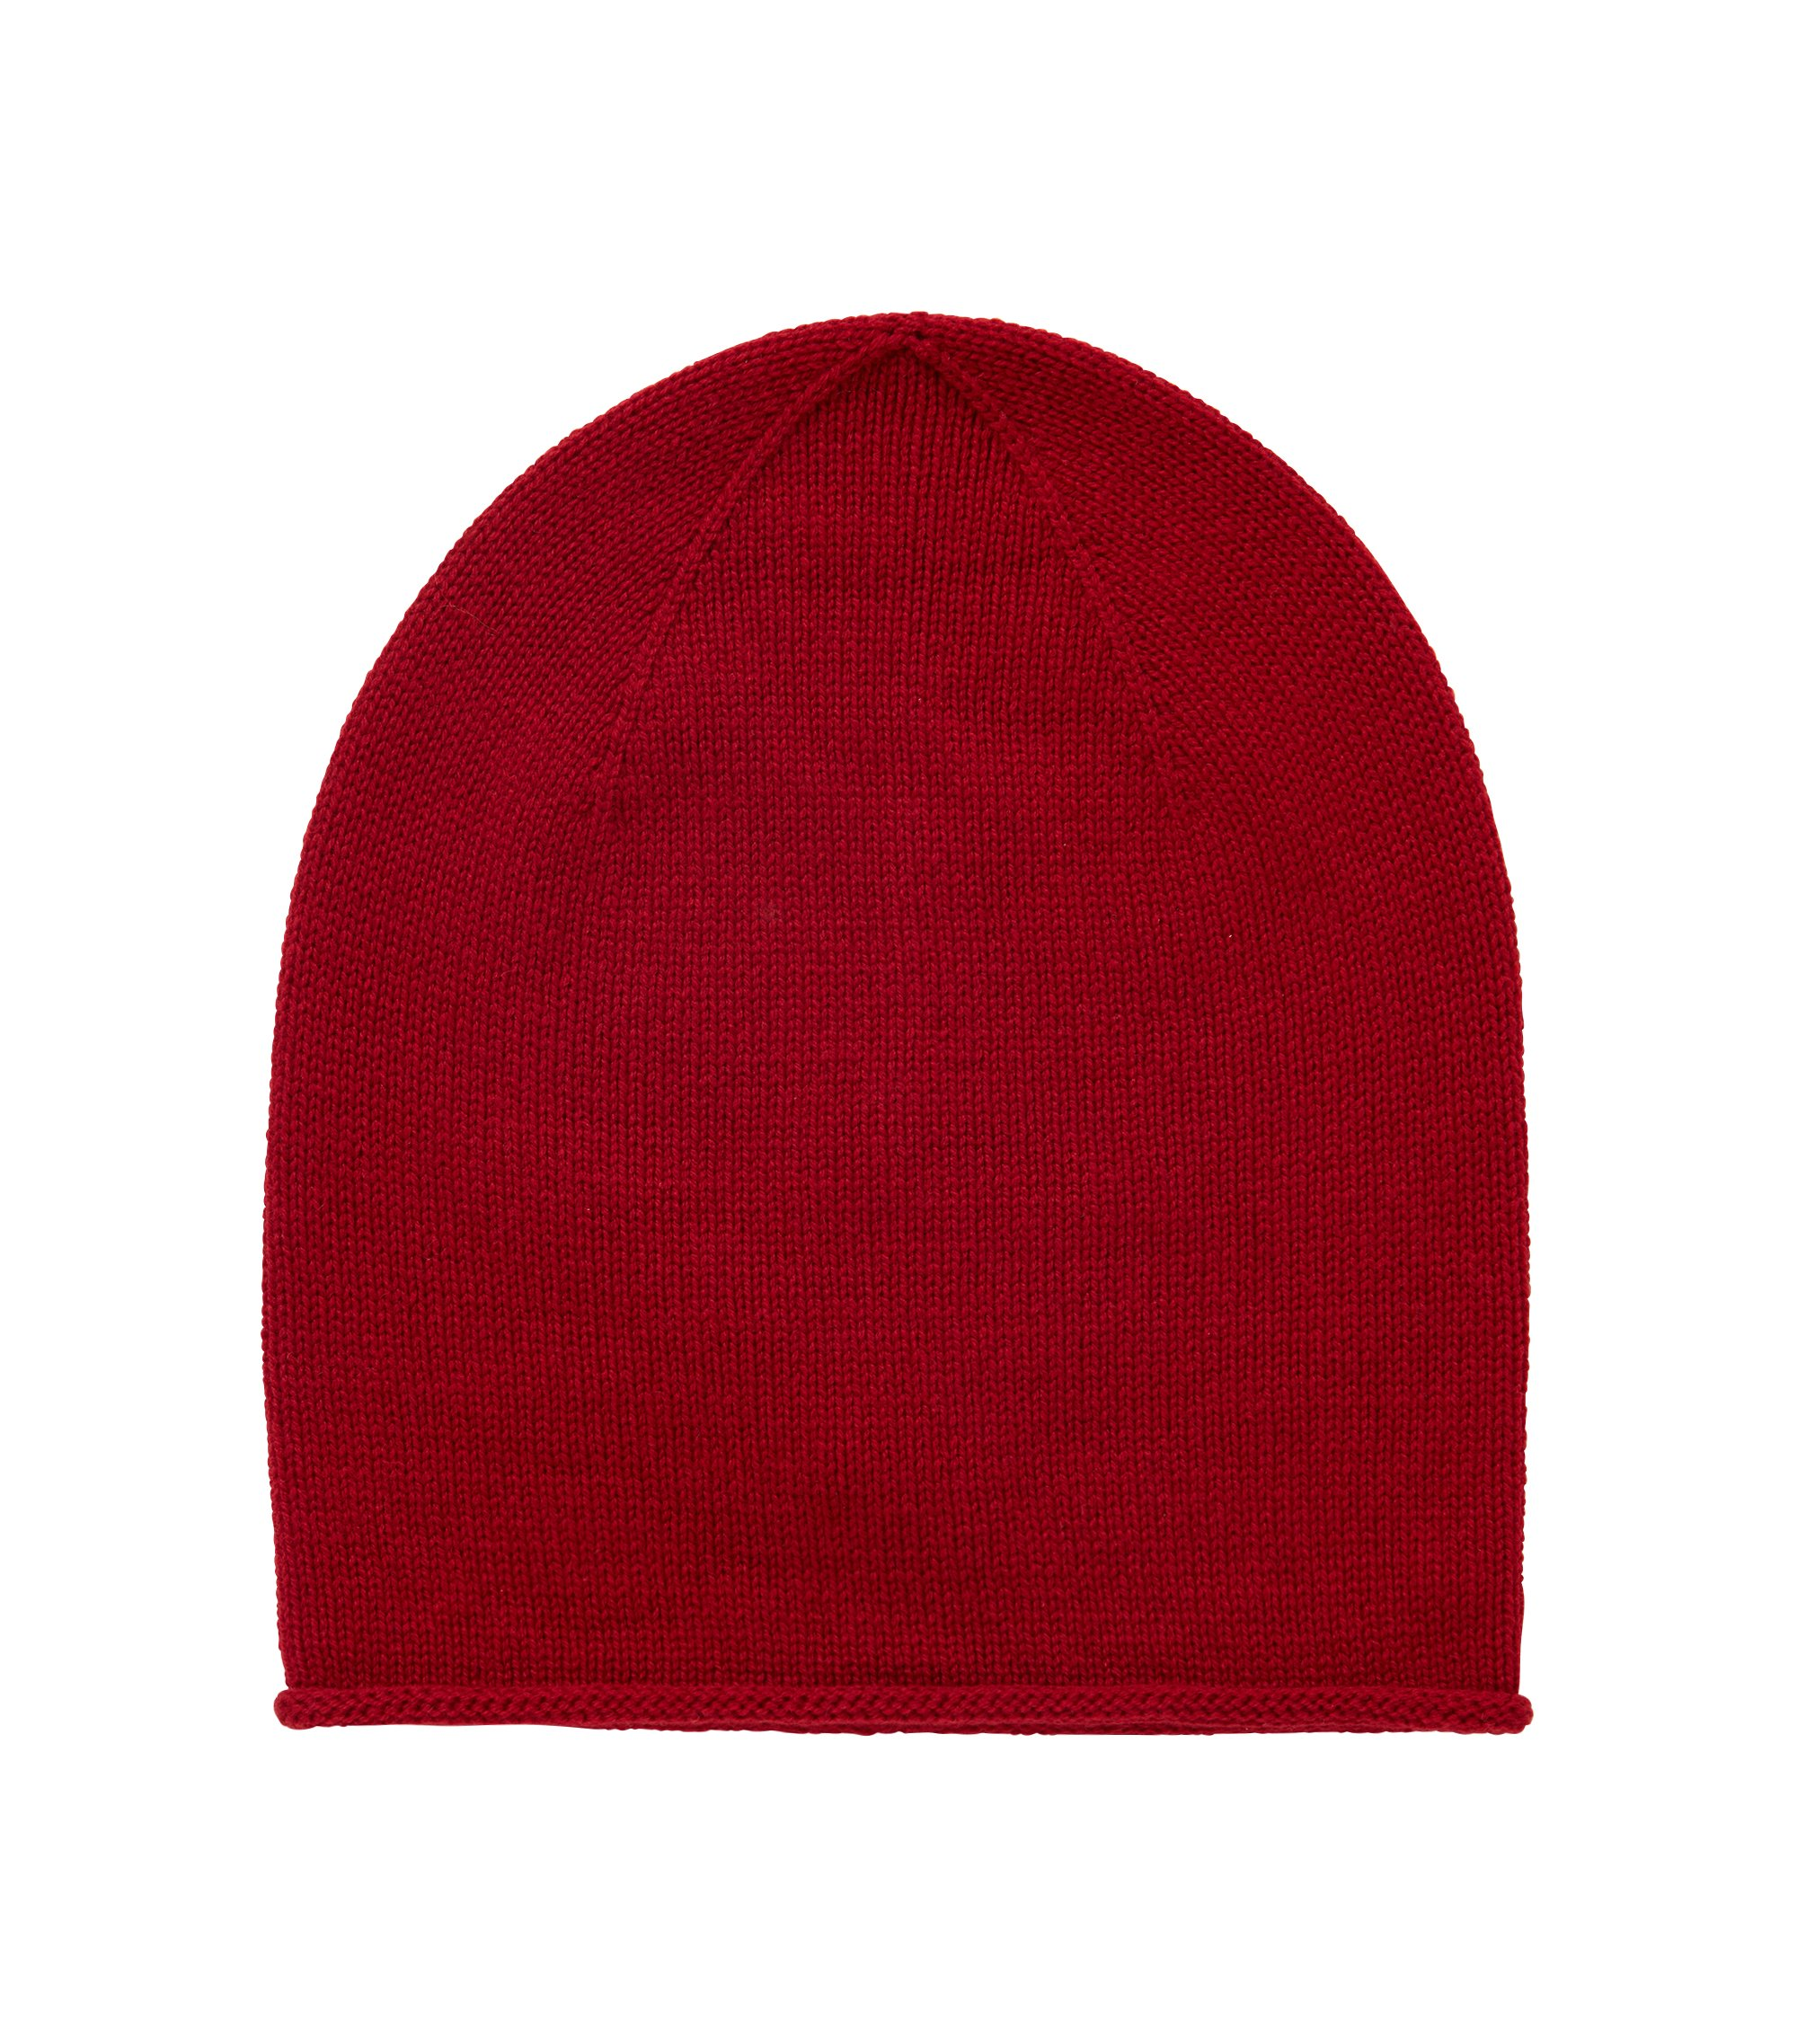 Beanie hat in mixed wools, Dark Red